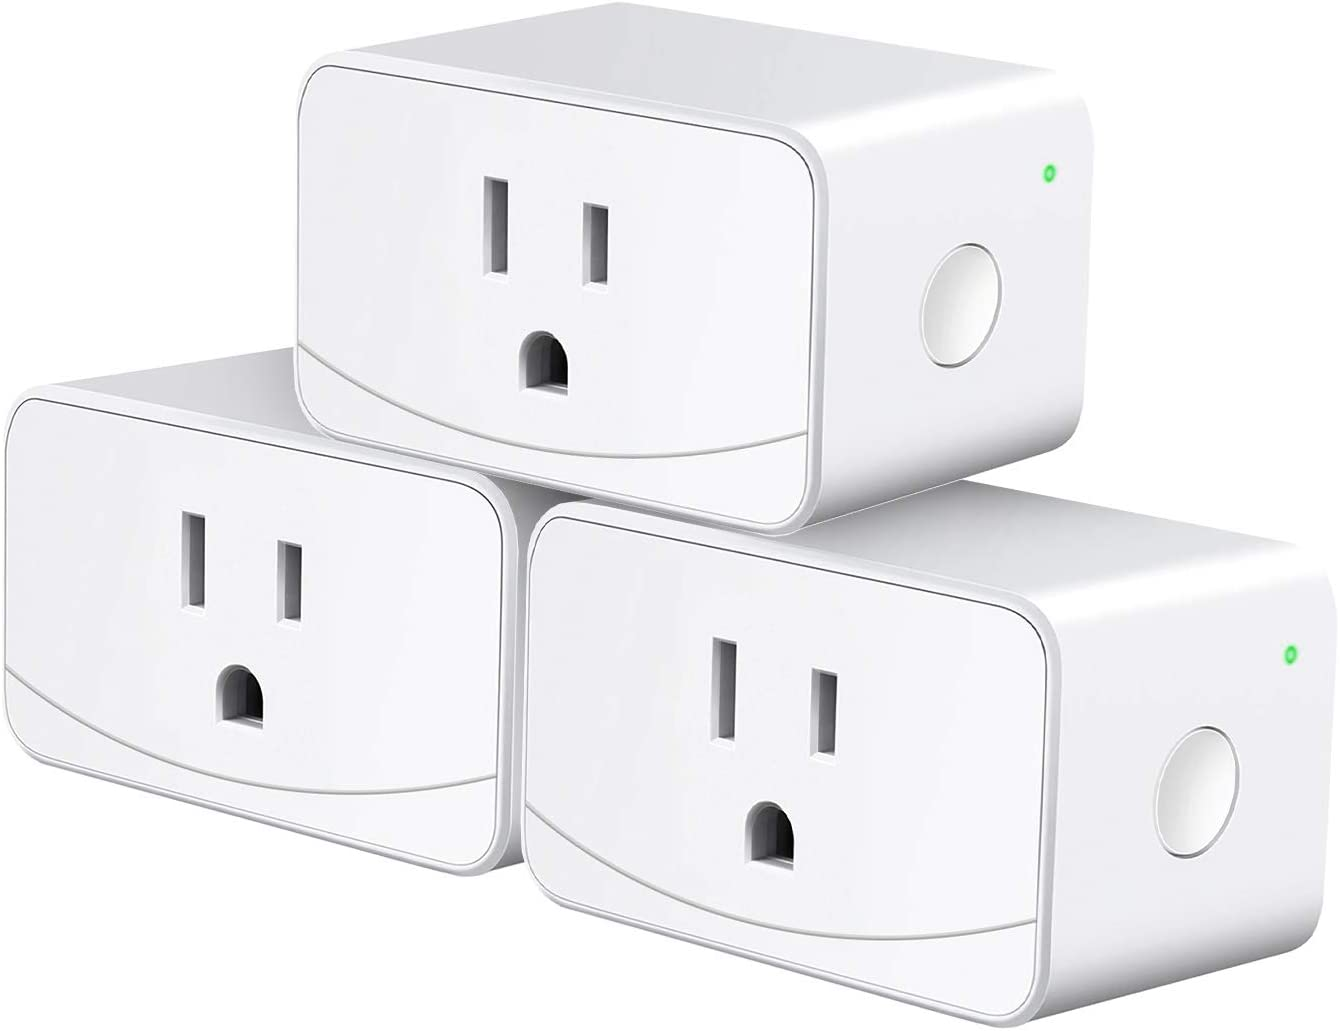 meross Smart Plug Mini WiFi Outlet 16A, Work with Alexa, SmartThings and Google, Voice Control, App Remote Control, Timer, FCC and ETL Certified, No Hub Required, 3 Pack